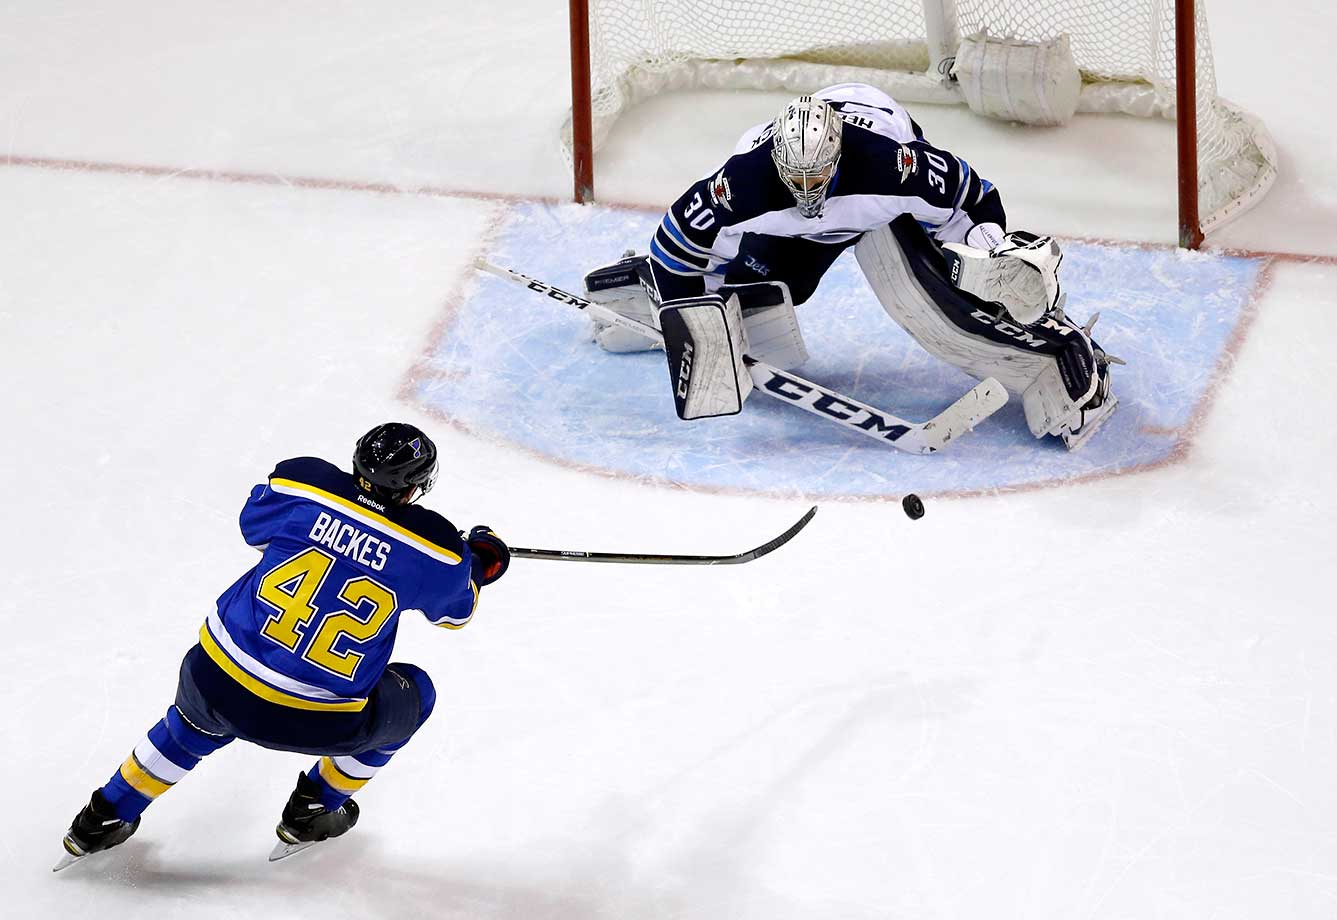 Winnipeg Jets goalie Connor Hellebuyck stops a shot from St. Louis Blues' David Backes.